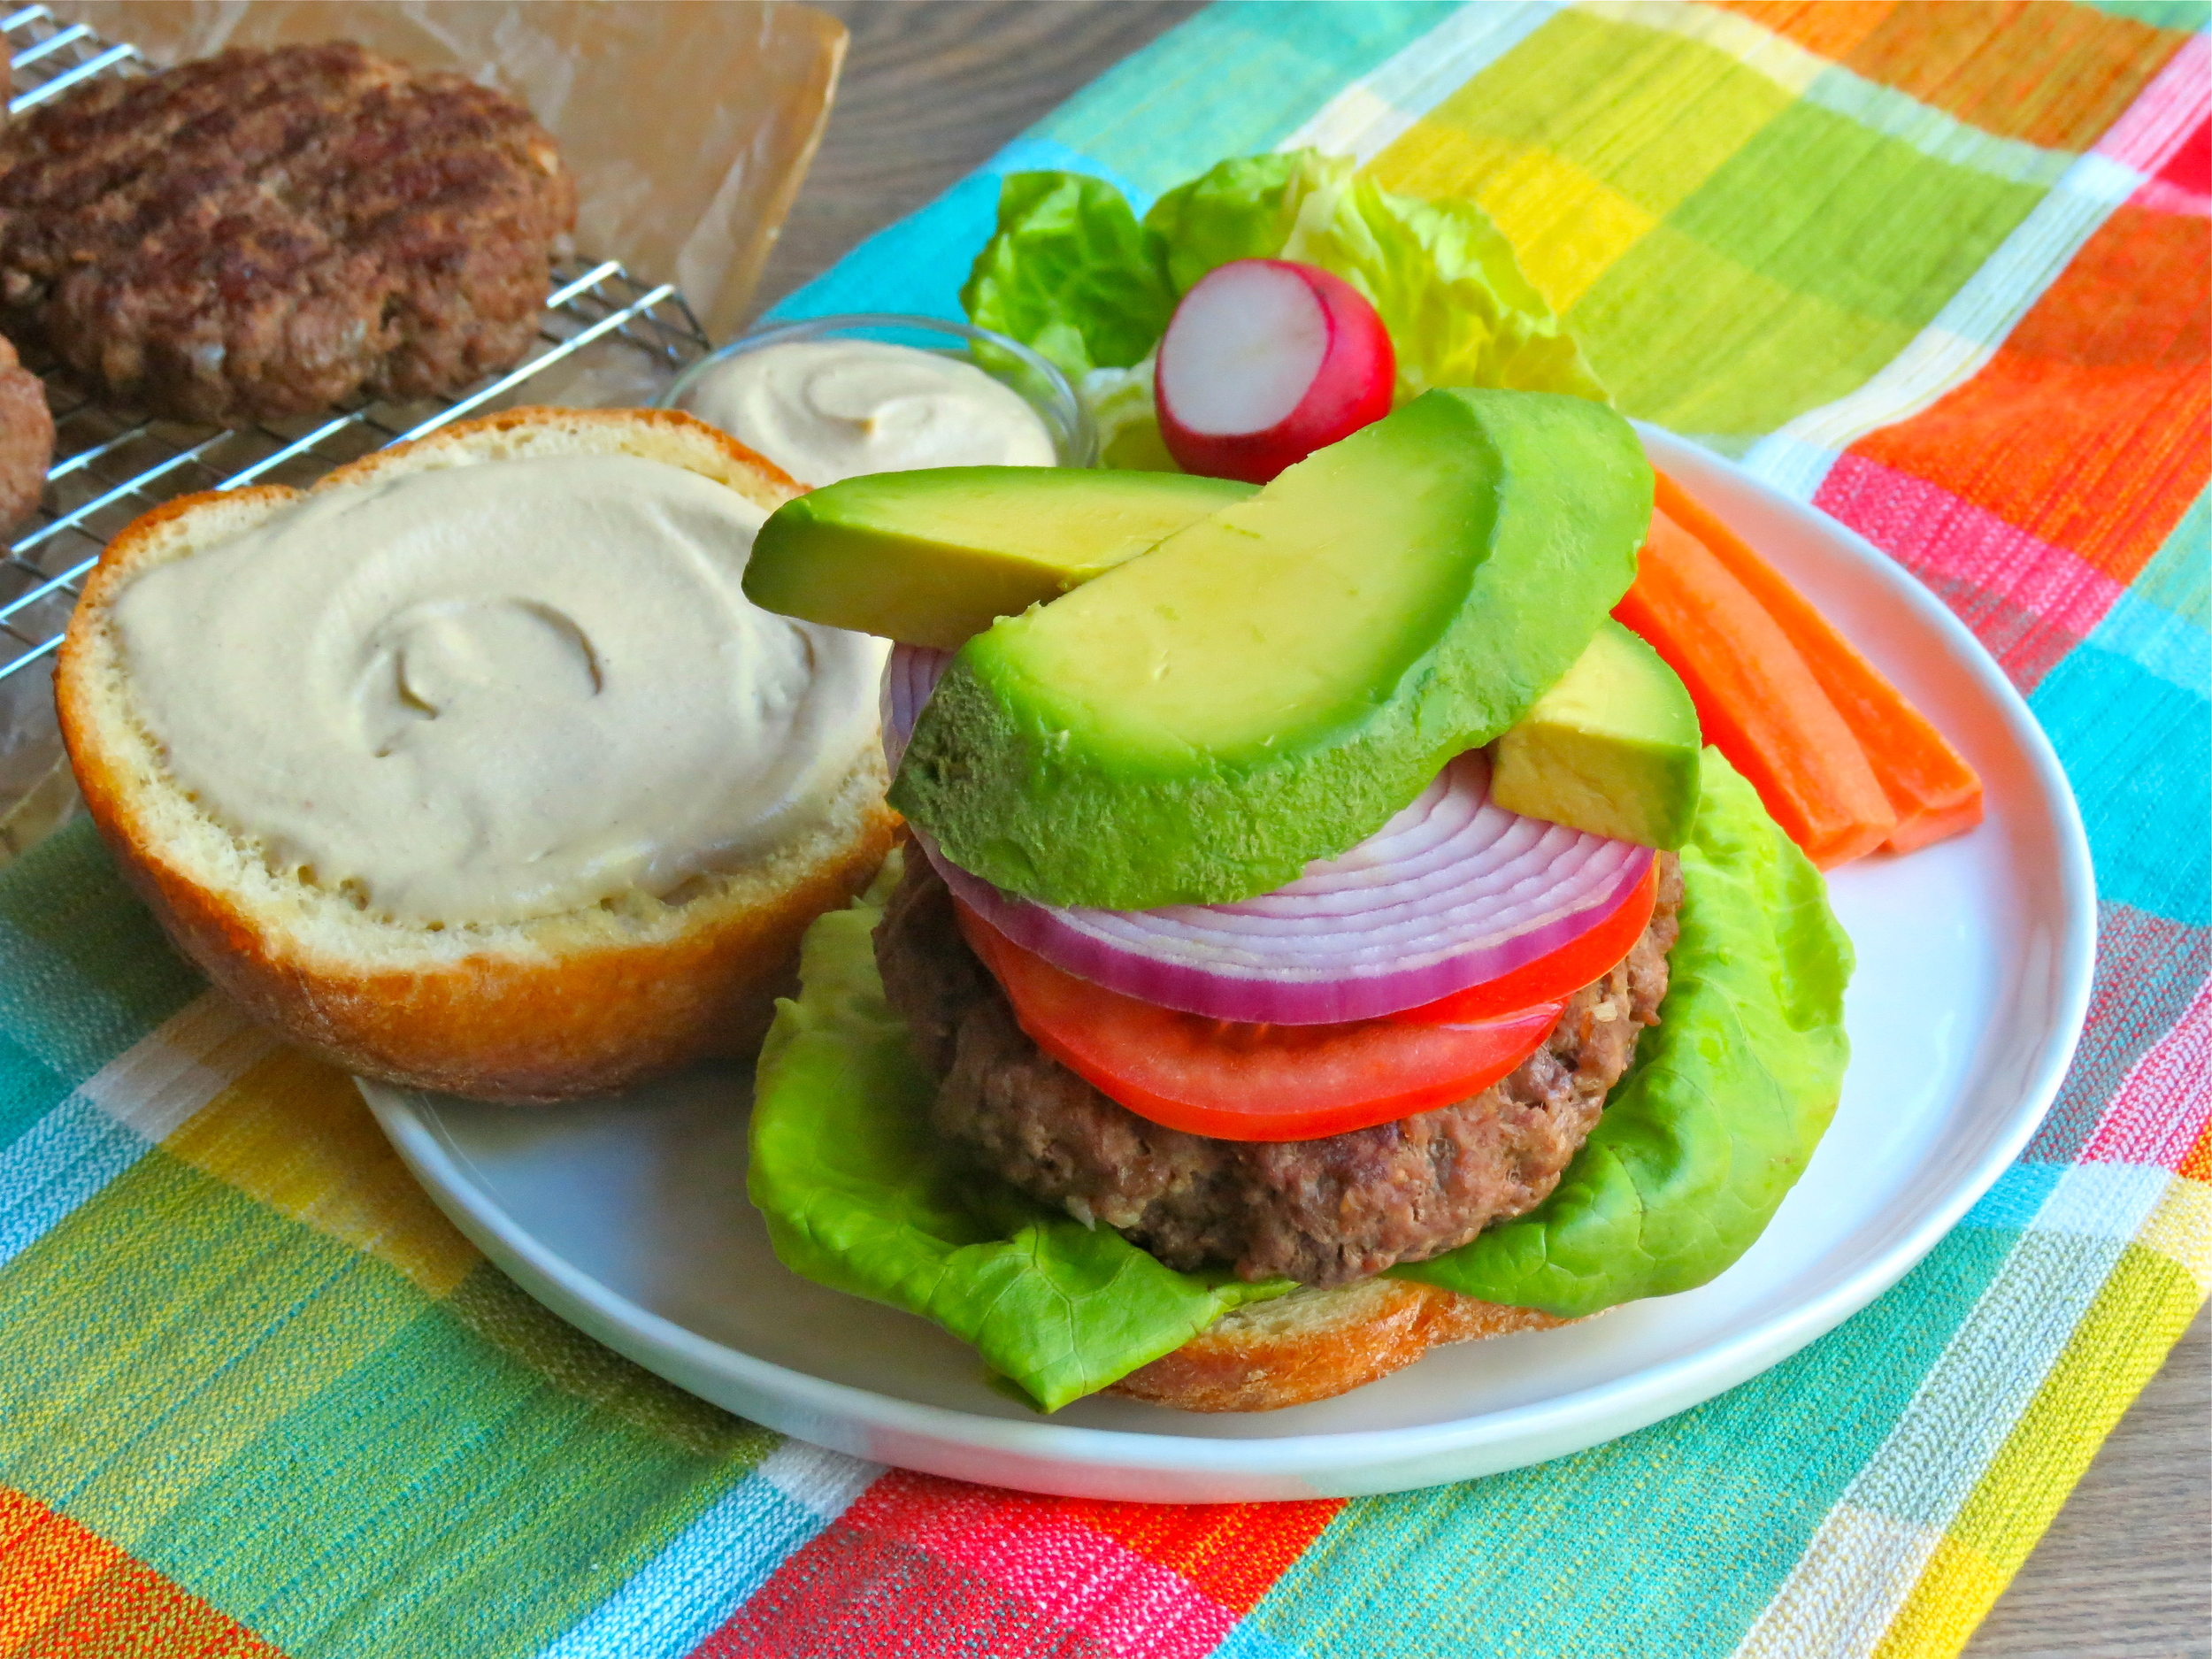 Grass-fed burgers on a bun! The choice is yours and you will enjoy either one.